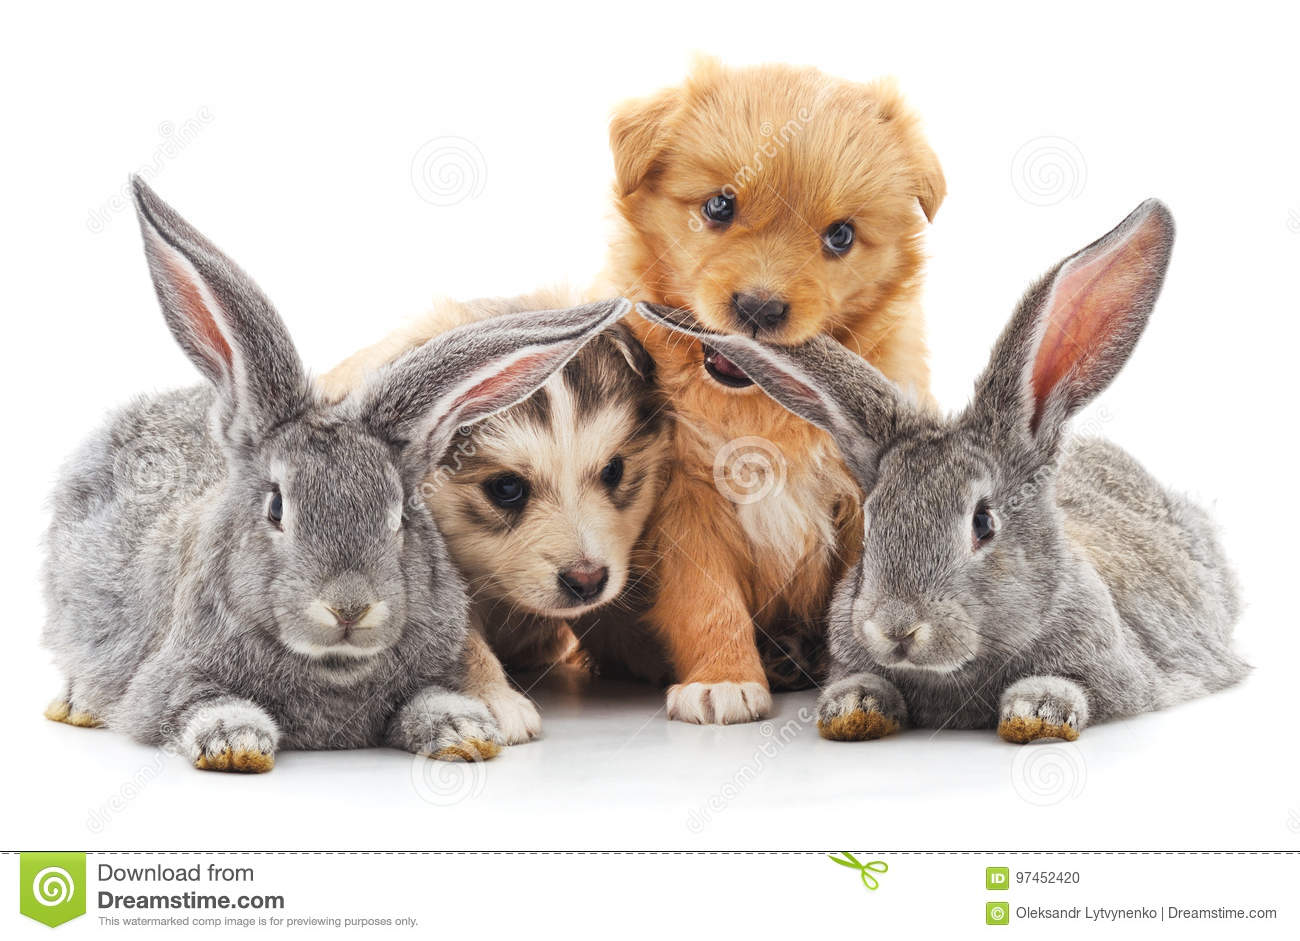 Two rabbits and two puppies.